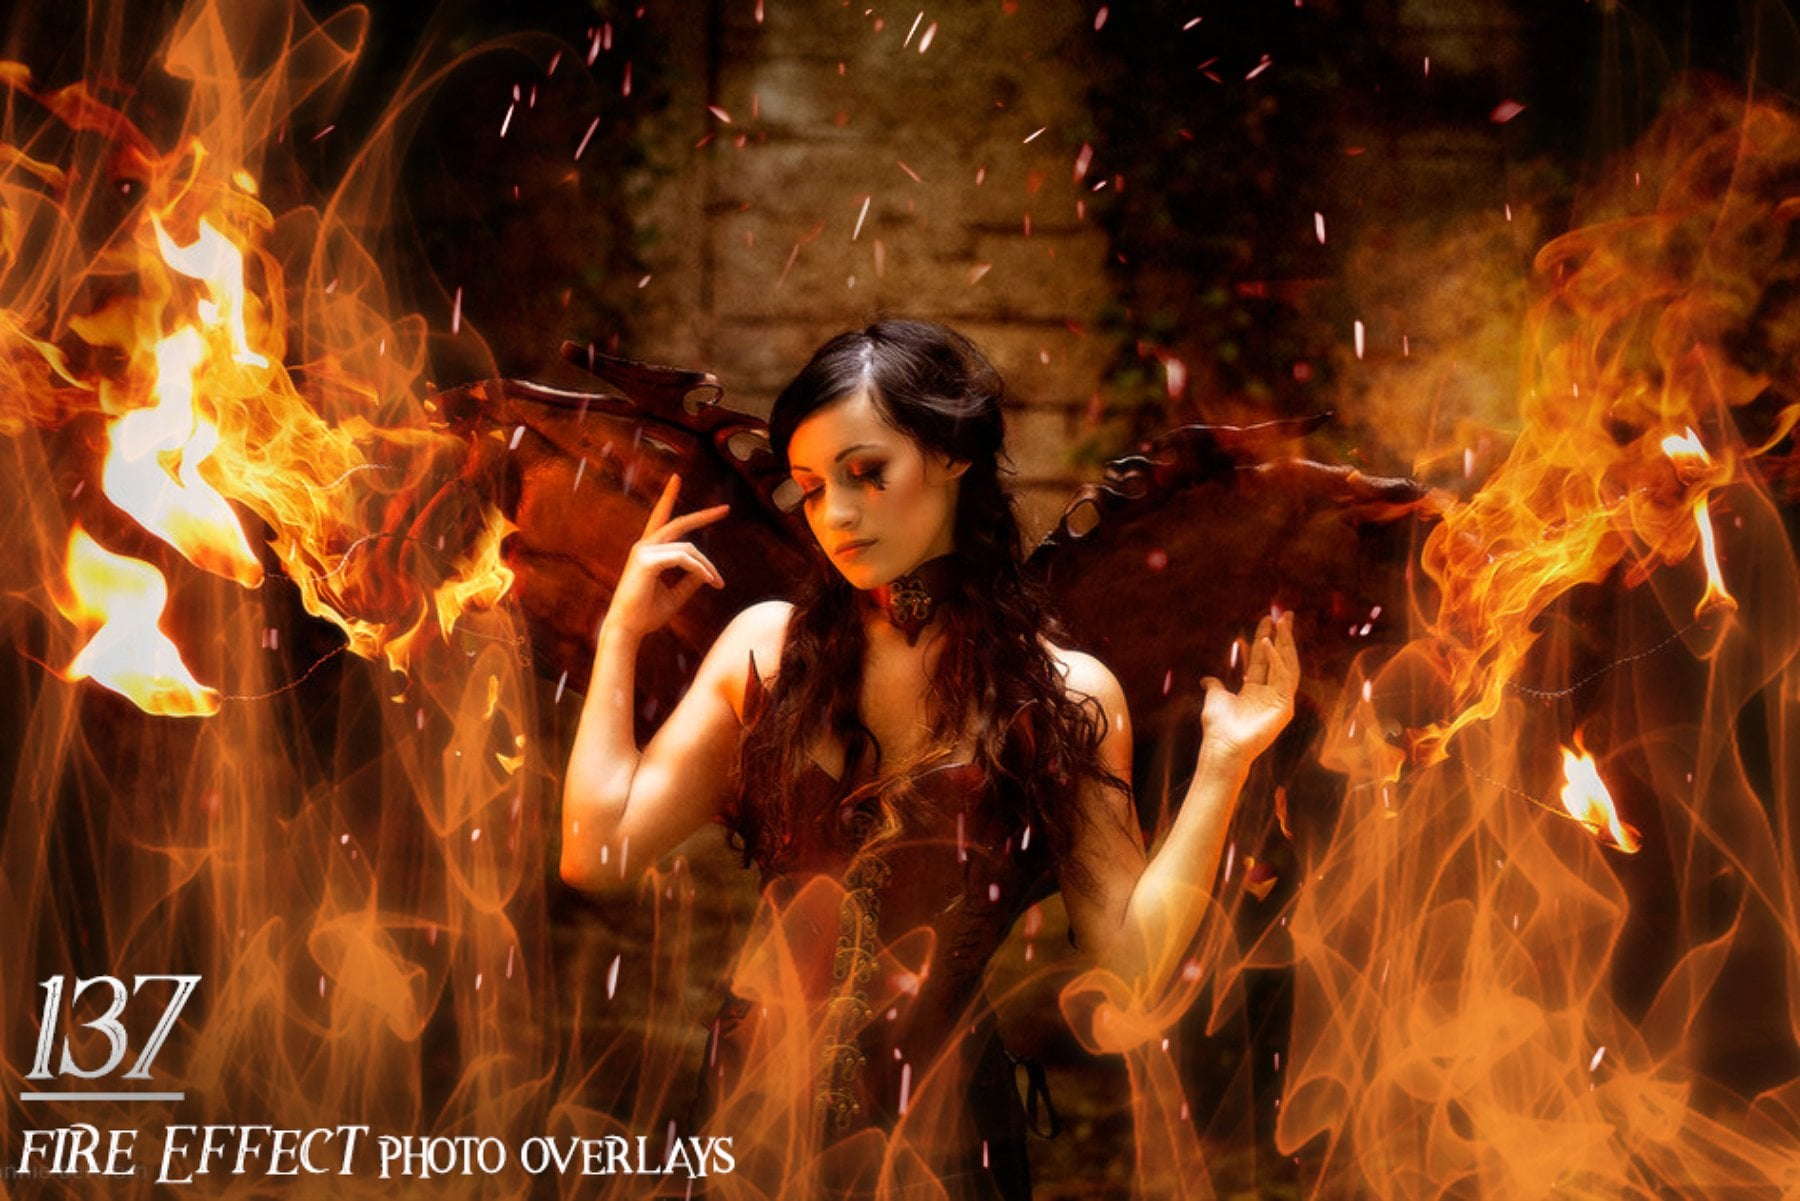 137 Fire Effect Photo Overlays - 5